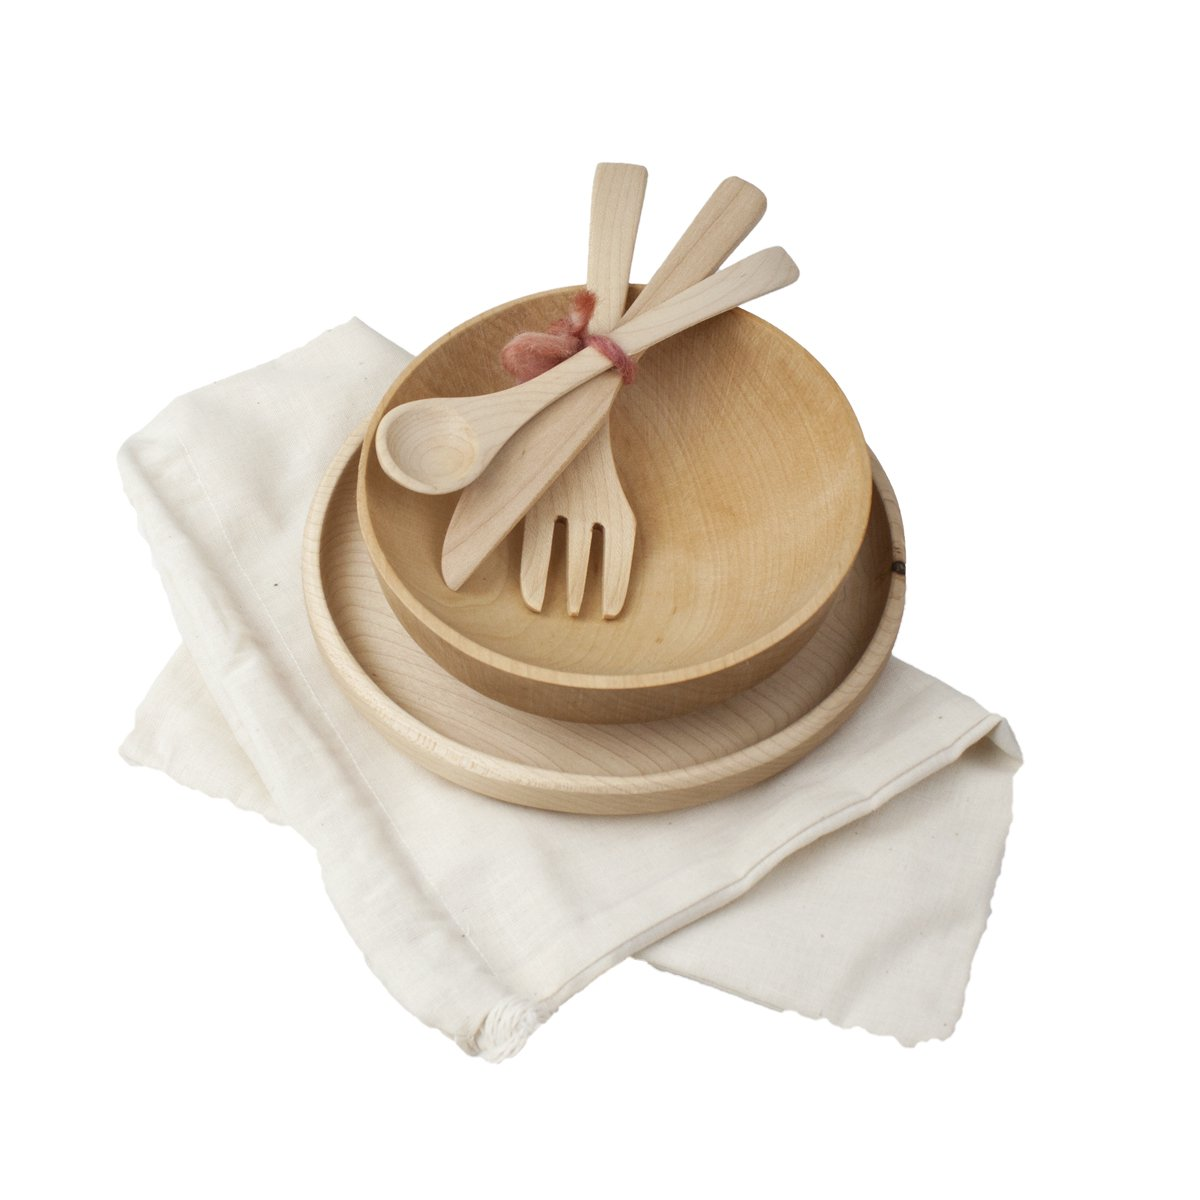 Camden Rose Childs Maple Wood Place Setting with Muslin Storage Bag